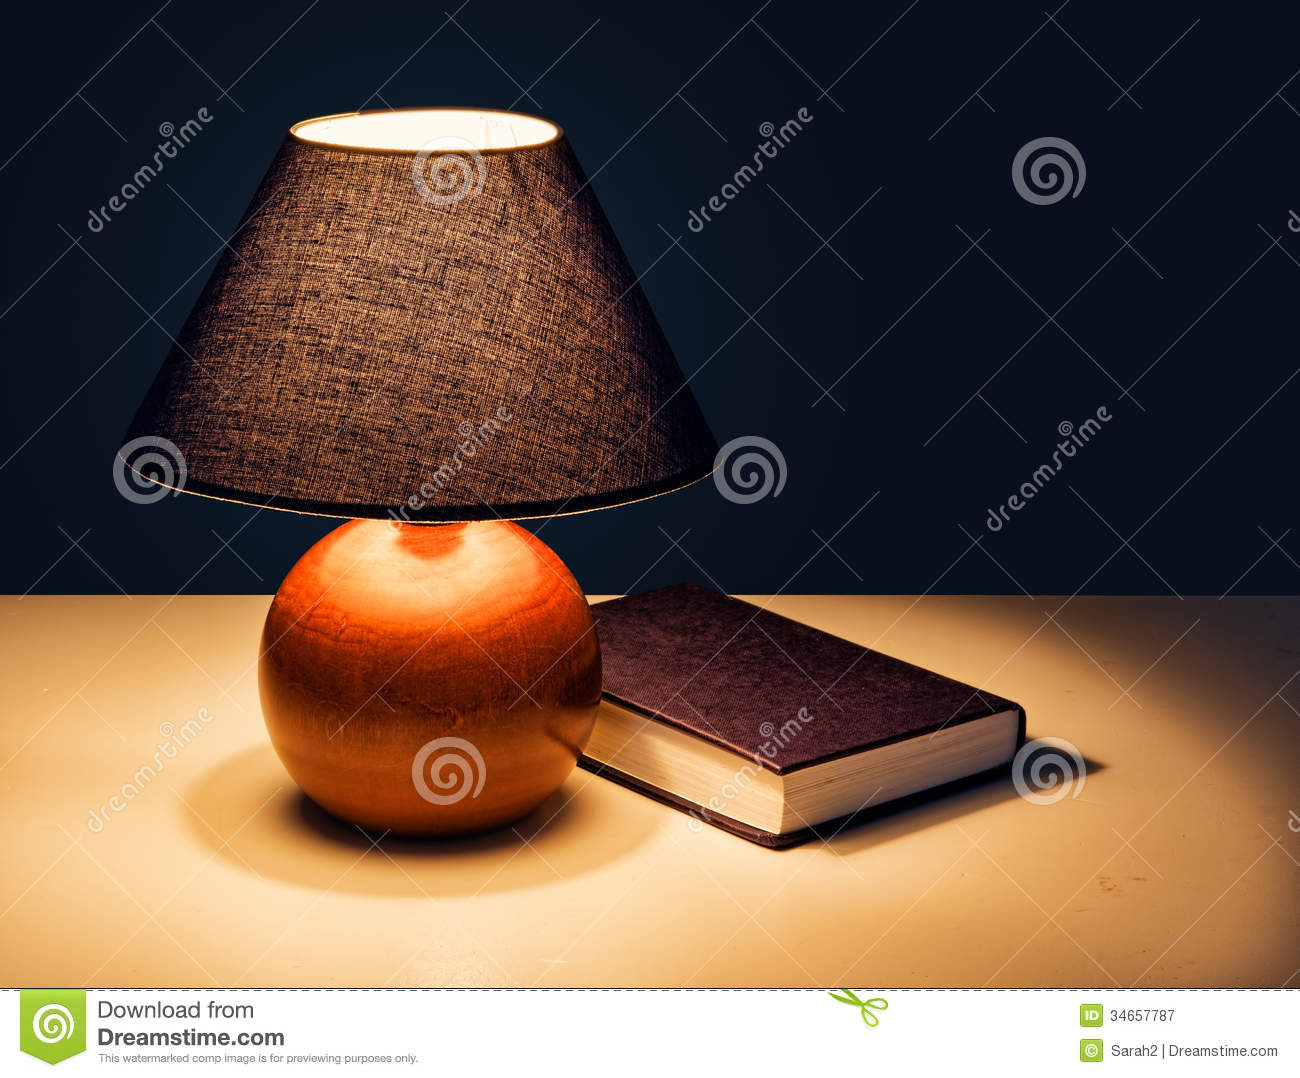 Night Reading Lamp Bedtime Reading Lamp With Book At Night Stock Image